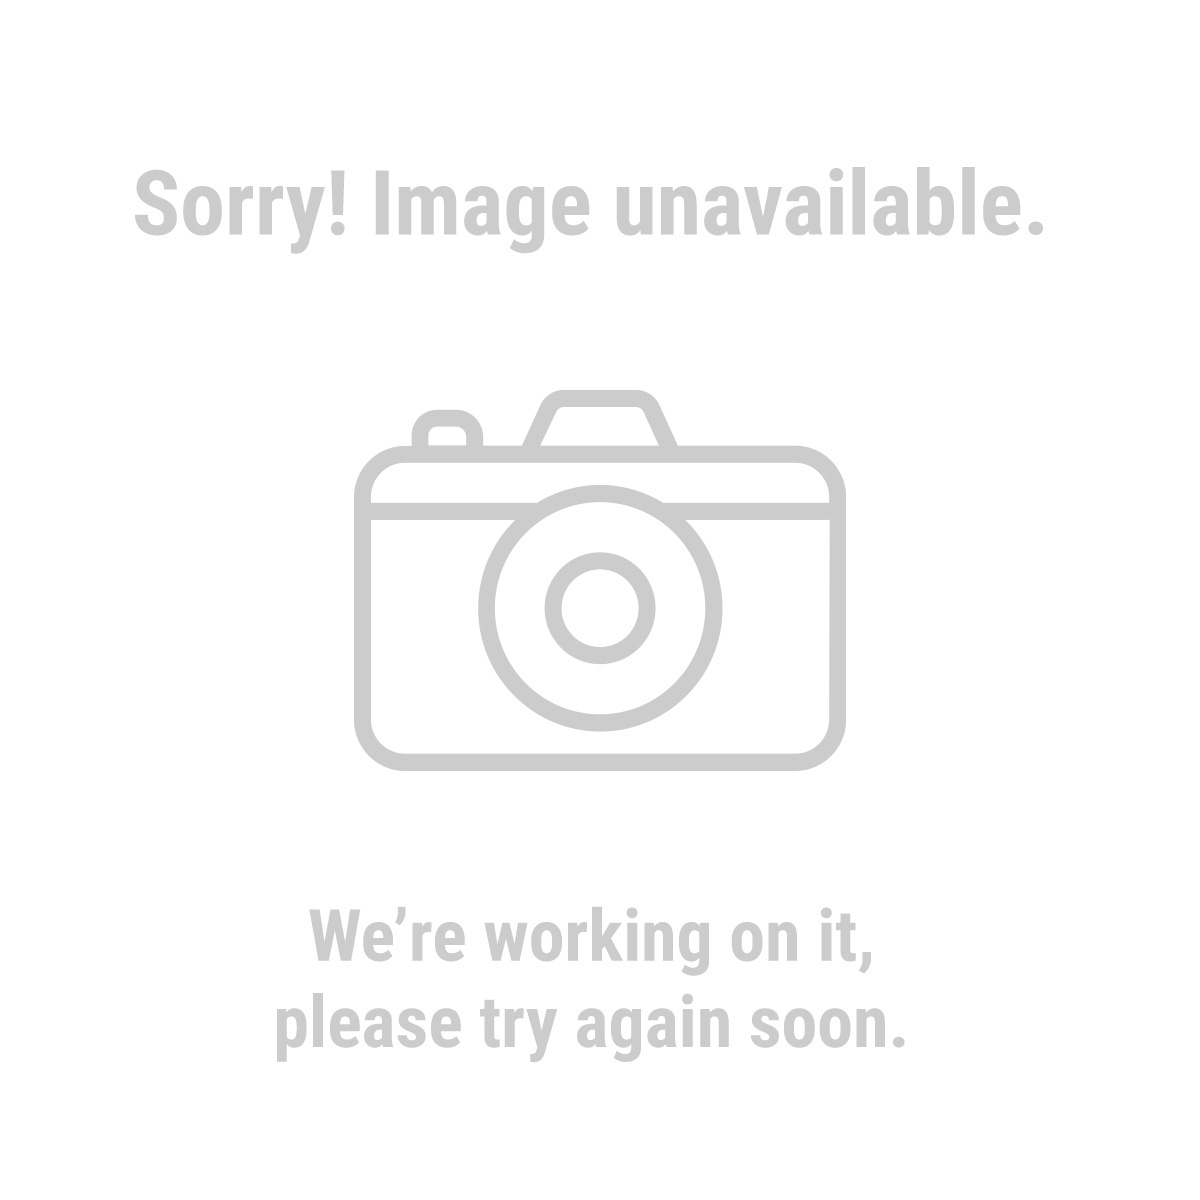 Thunderbolt Magnum 62538 NiMH/NiCd Battery Quick Charger